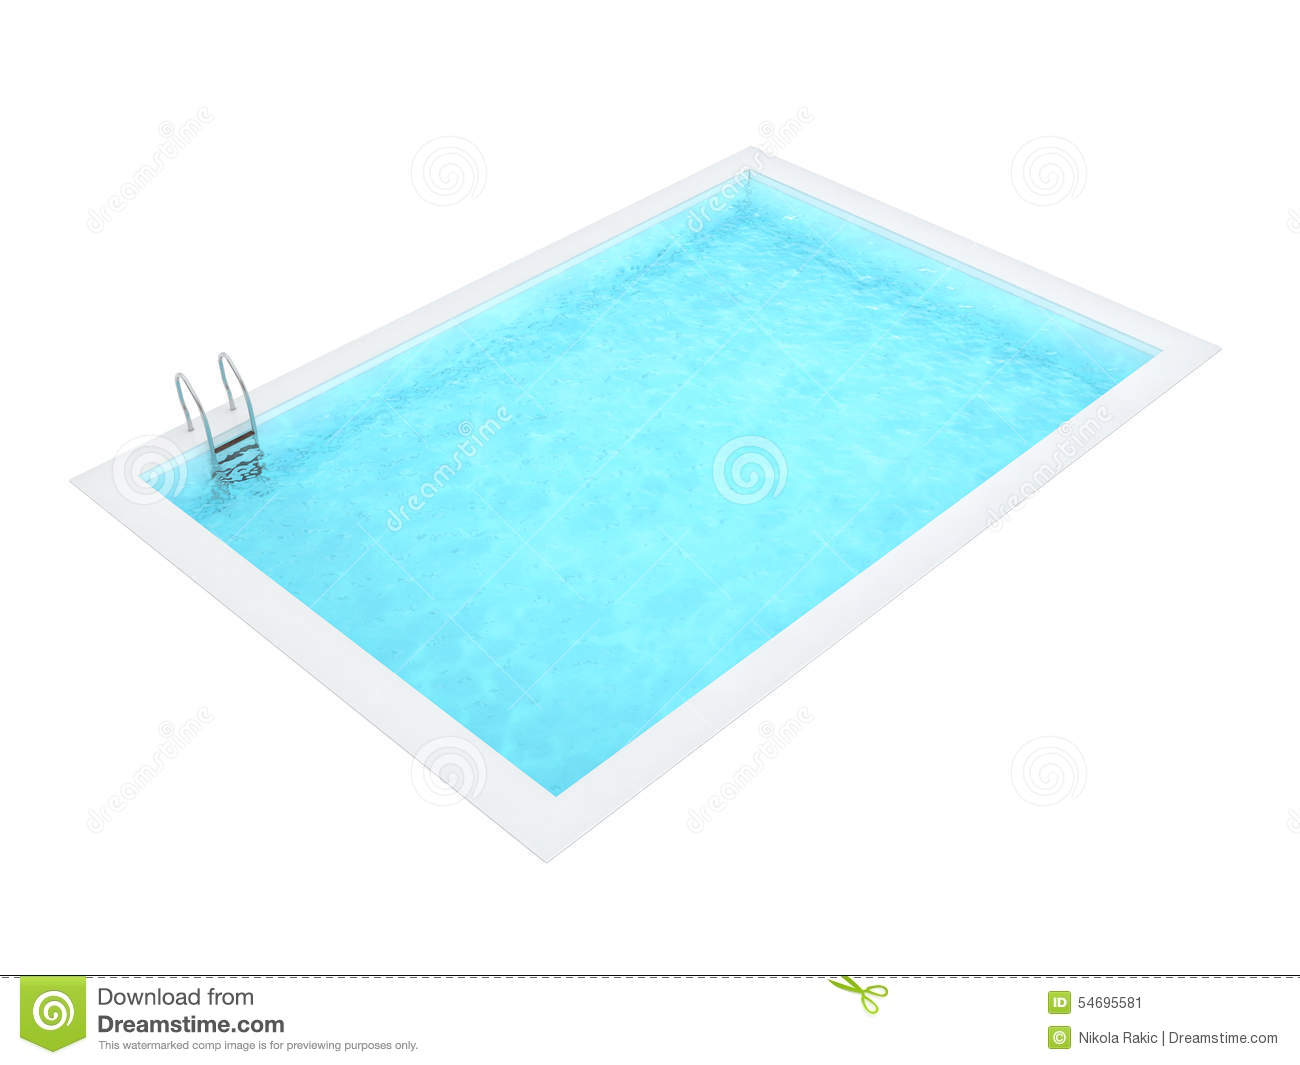 Piscine de rectangle d 39 isolement sur le fond blanc for Fondos de piscinas dibujos